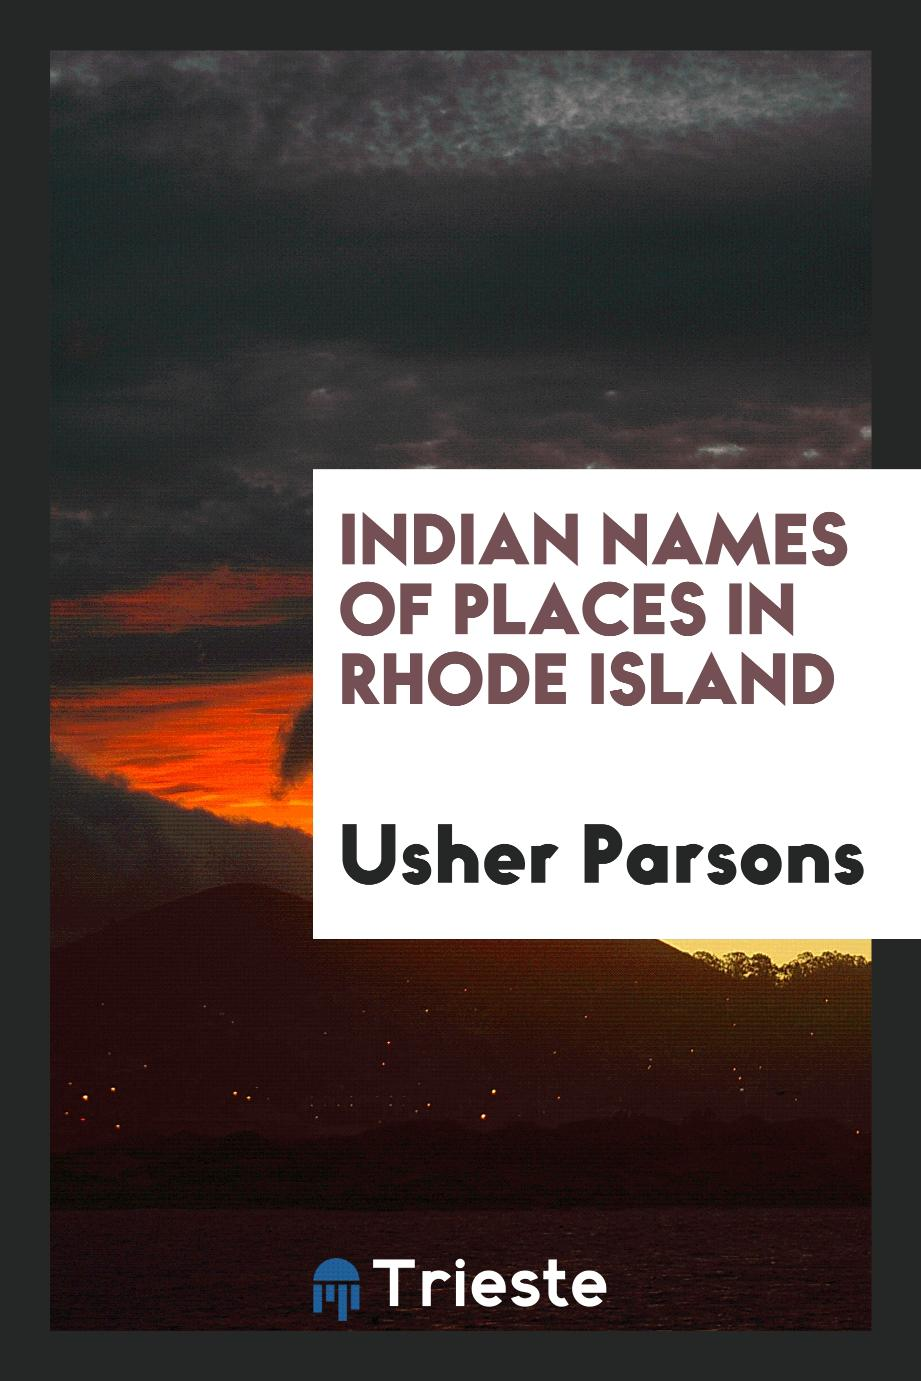 Usher Parsons - Indian names of places in Rhode Island